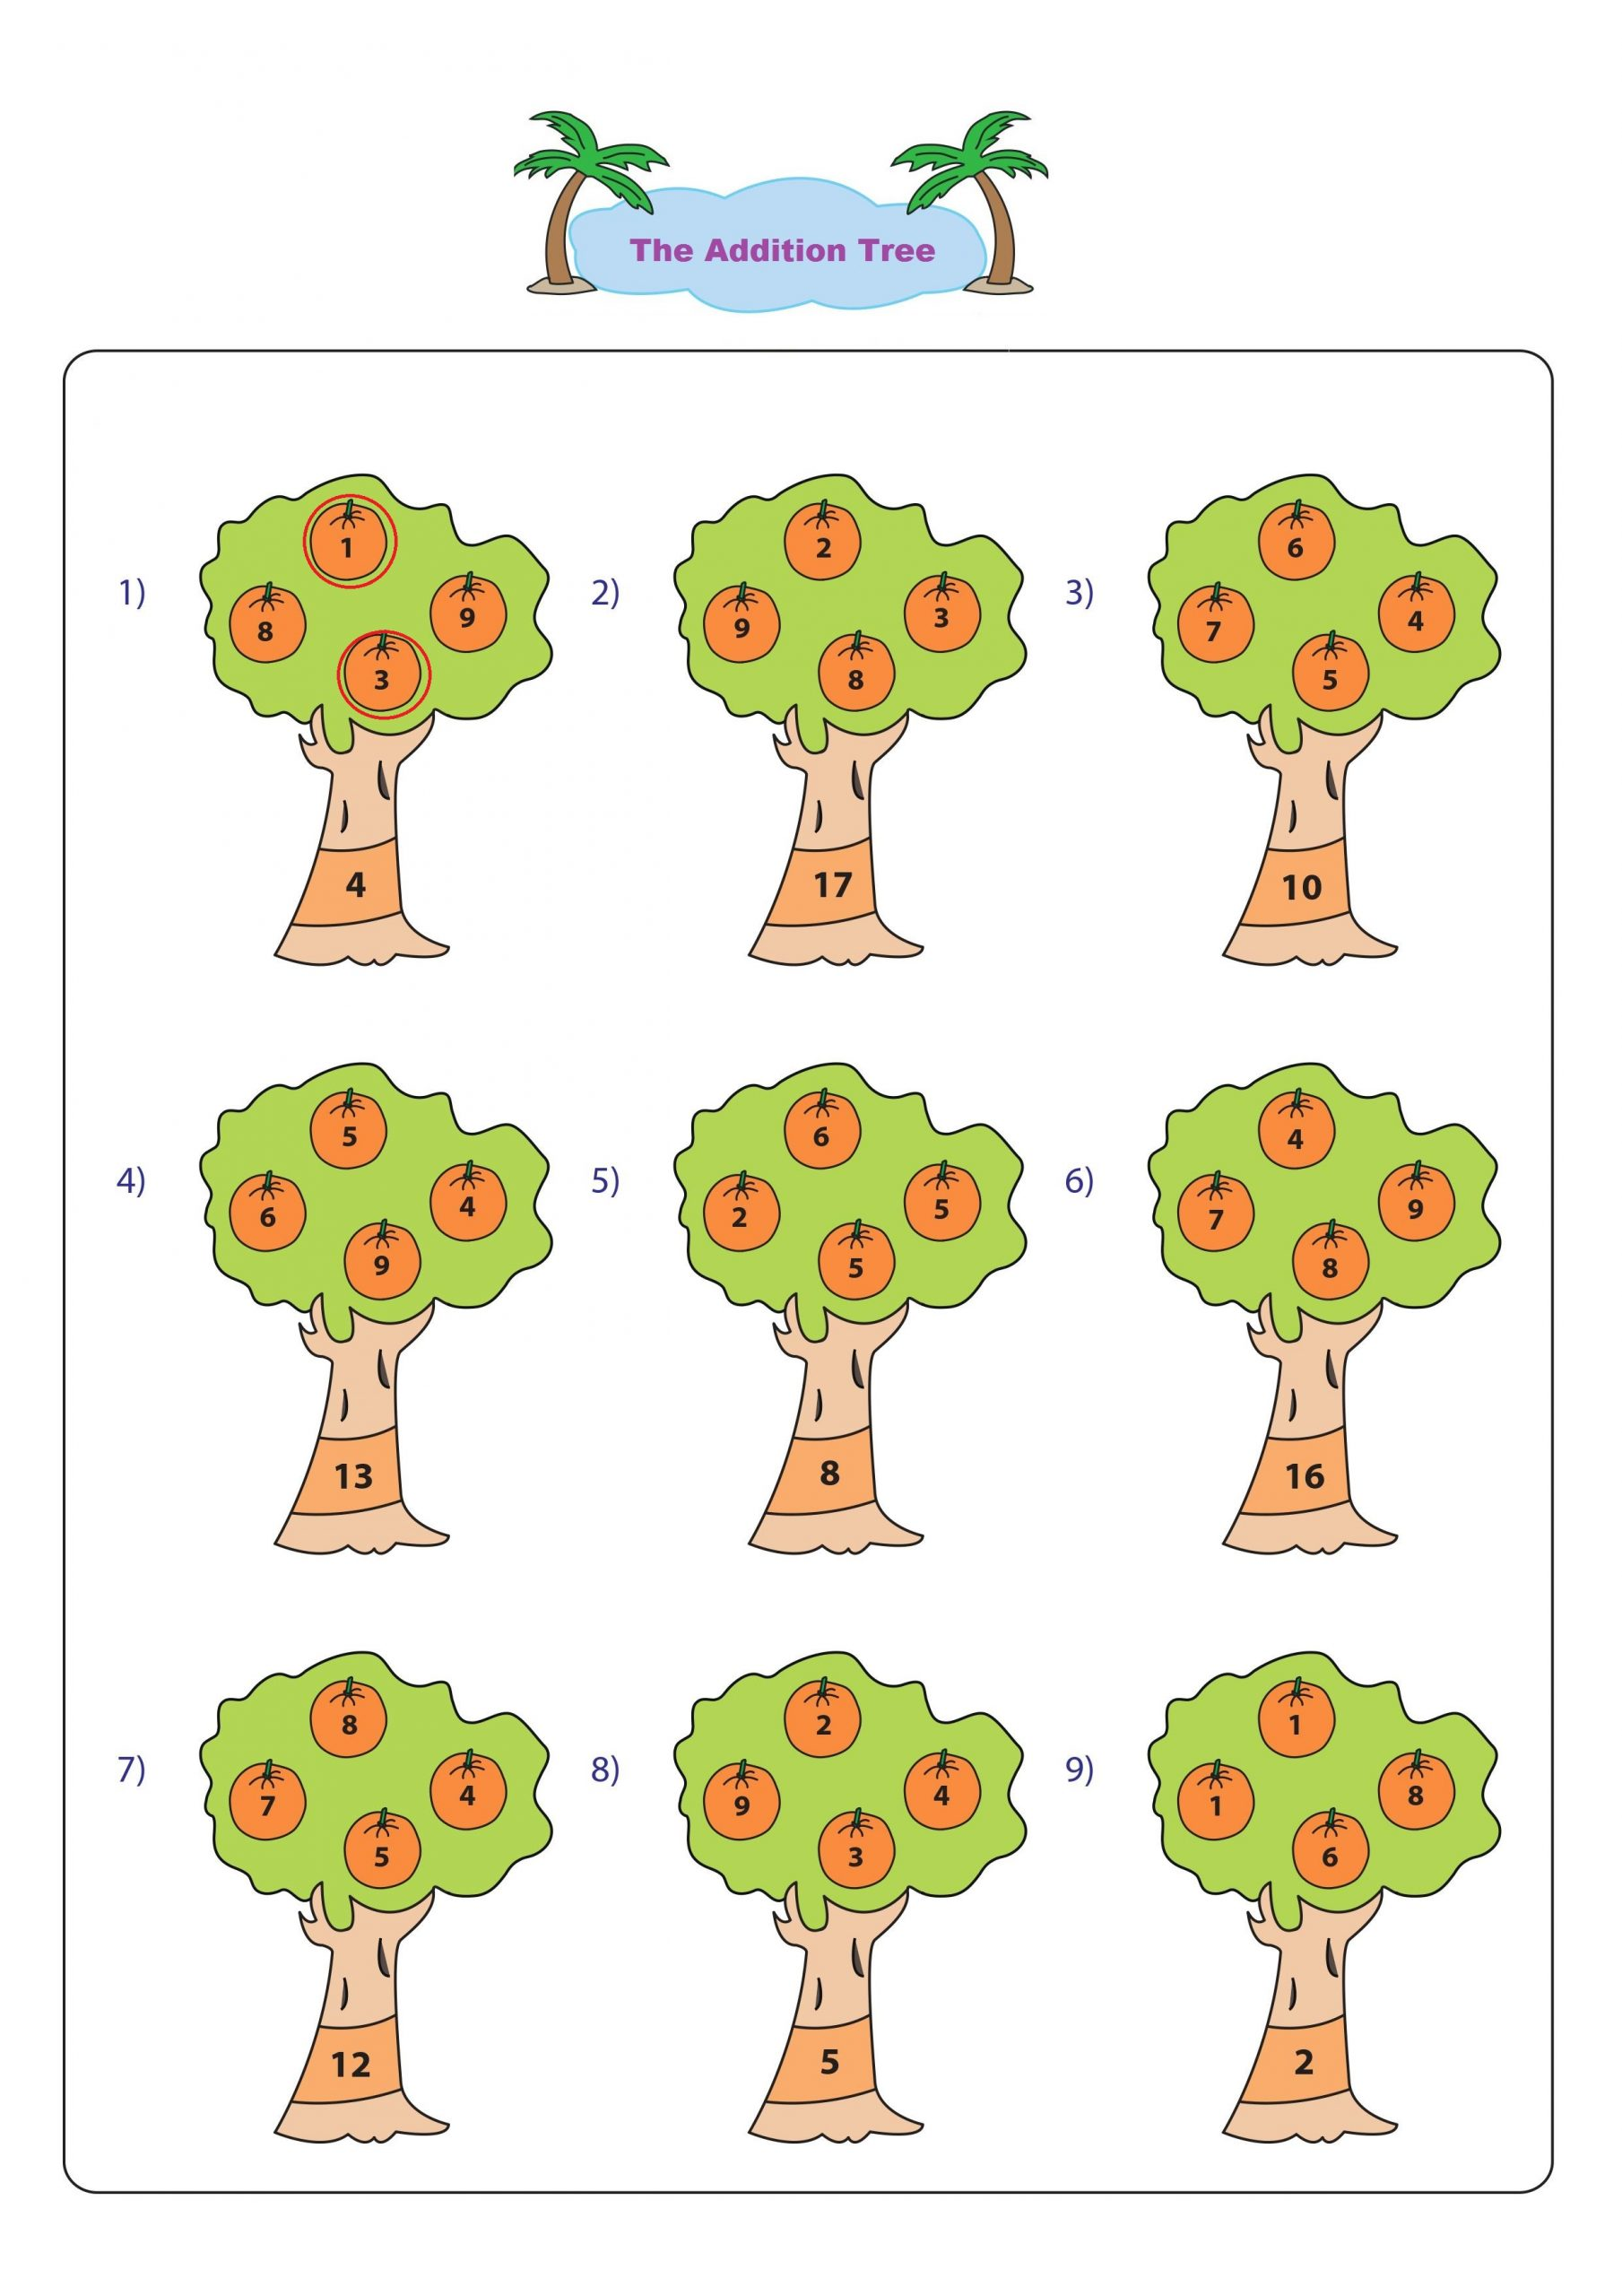 The Addition Tree 2